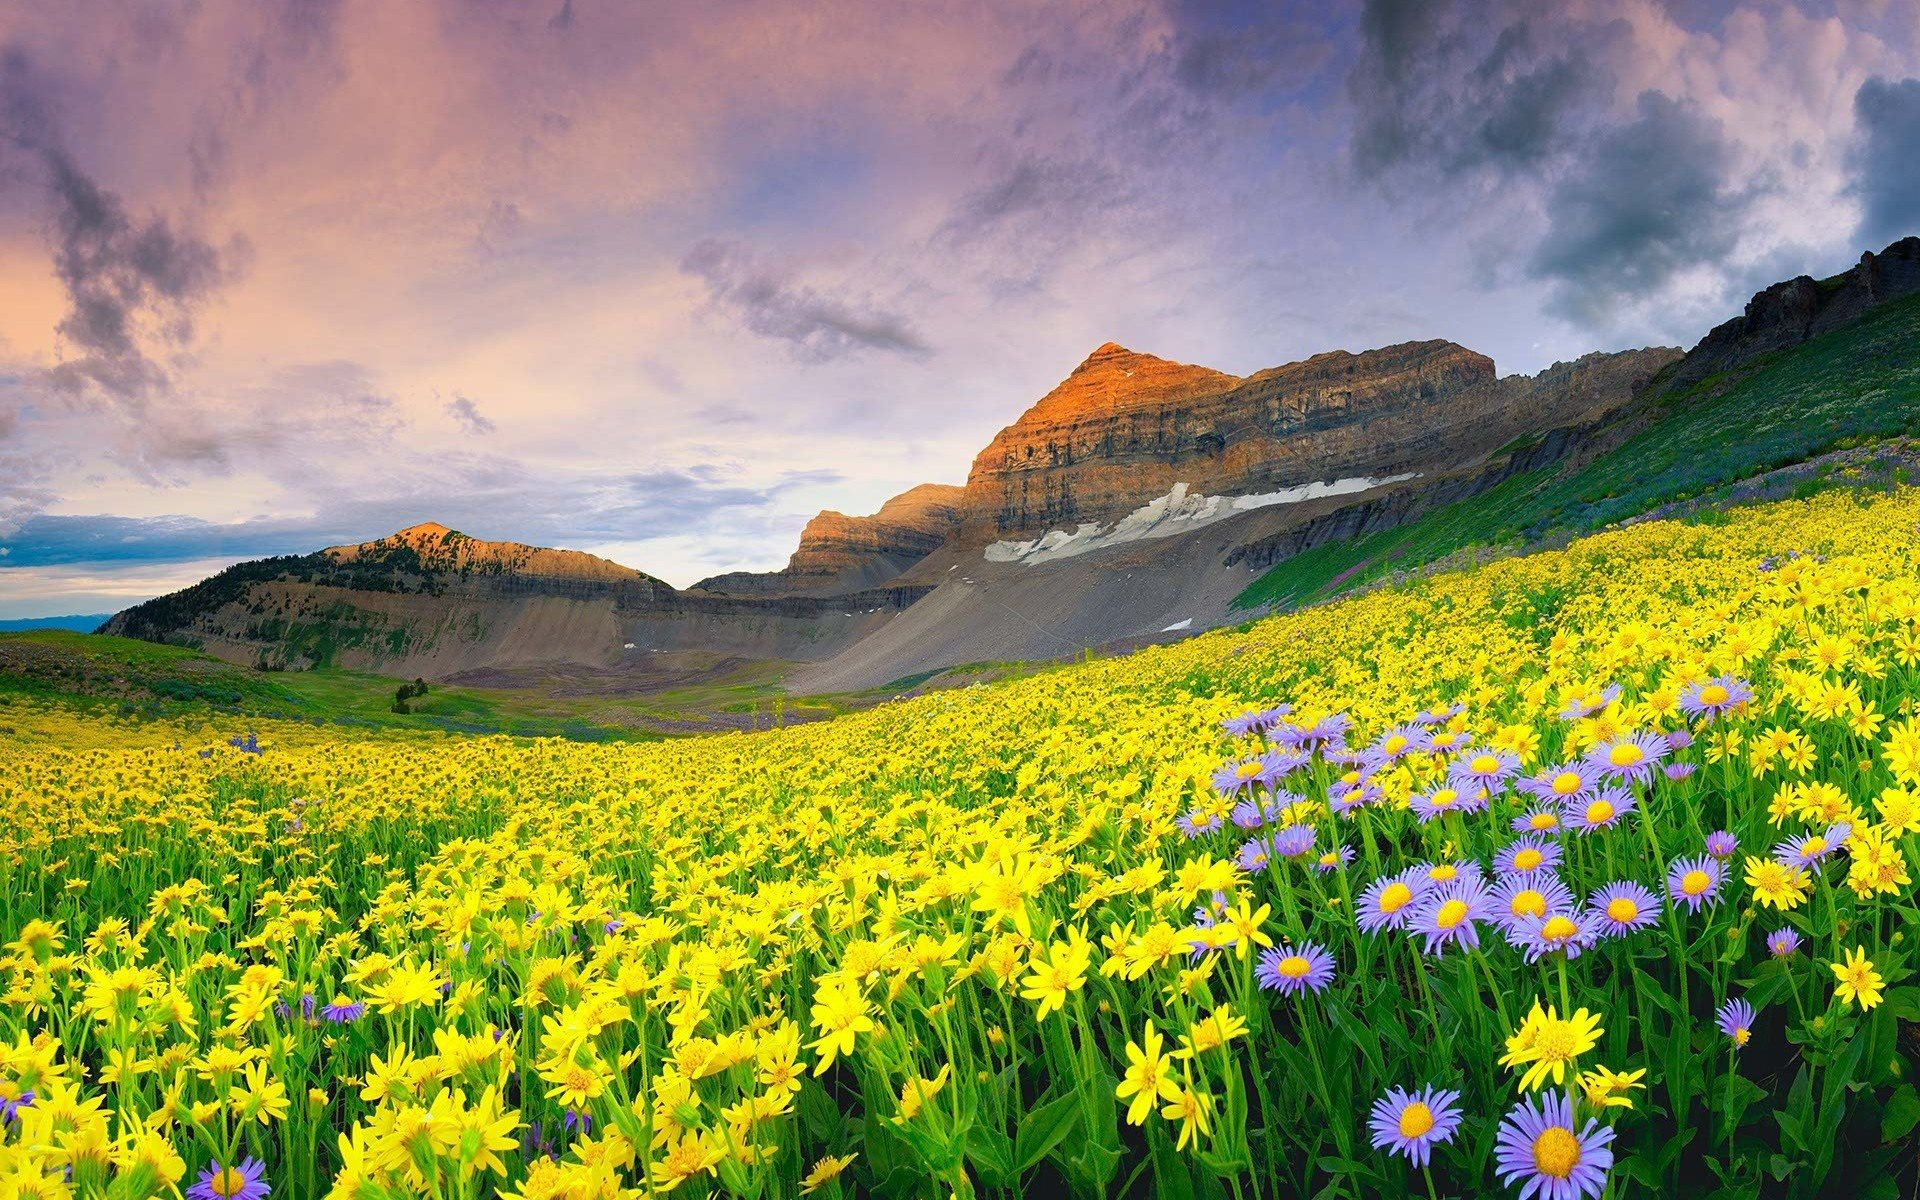 Beautiful Mountain Valley Of Flowers Wallpaper 1920x1200